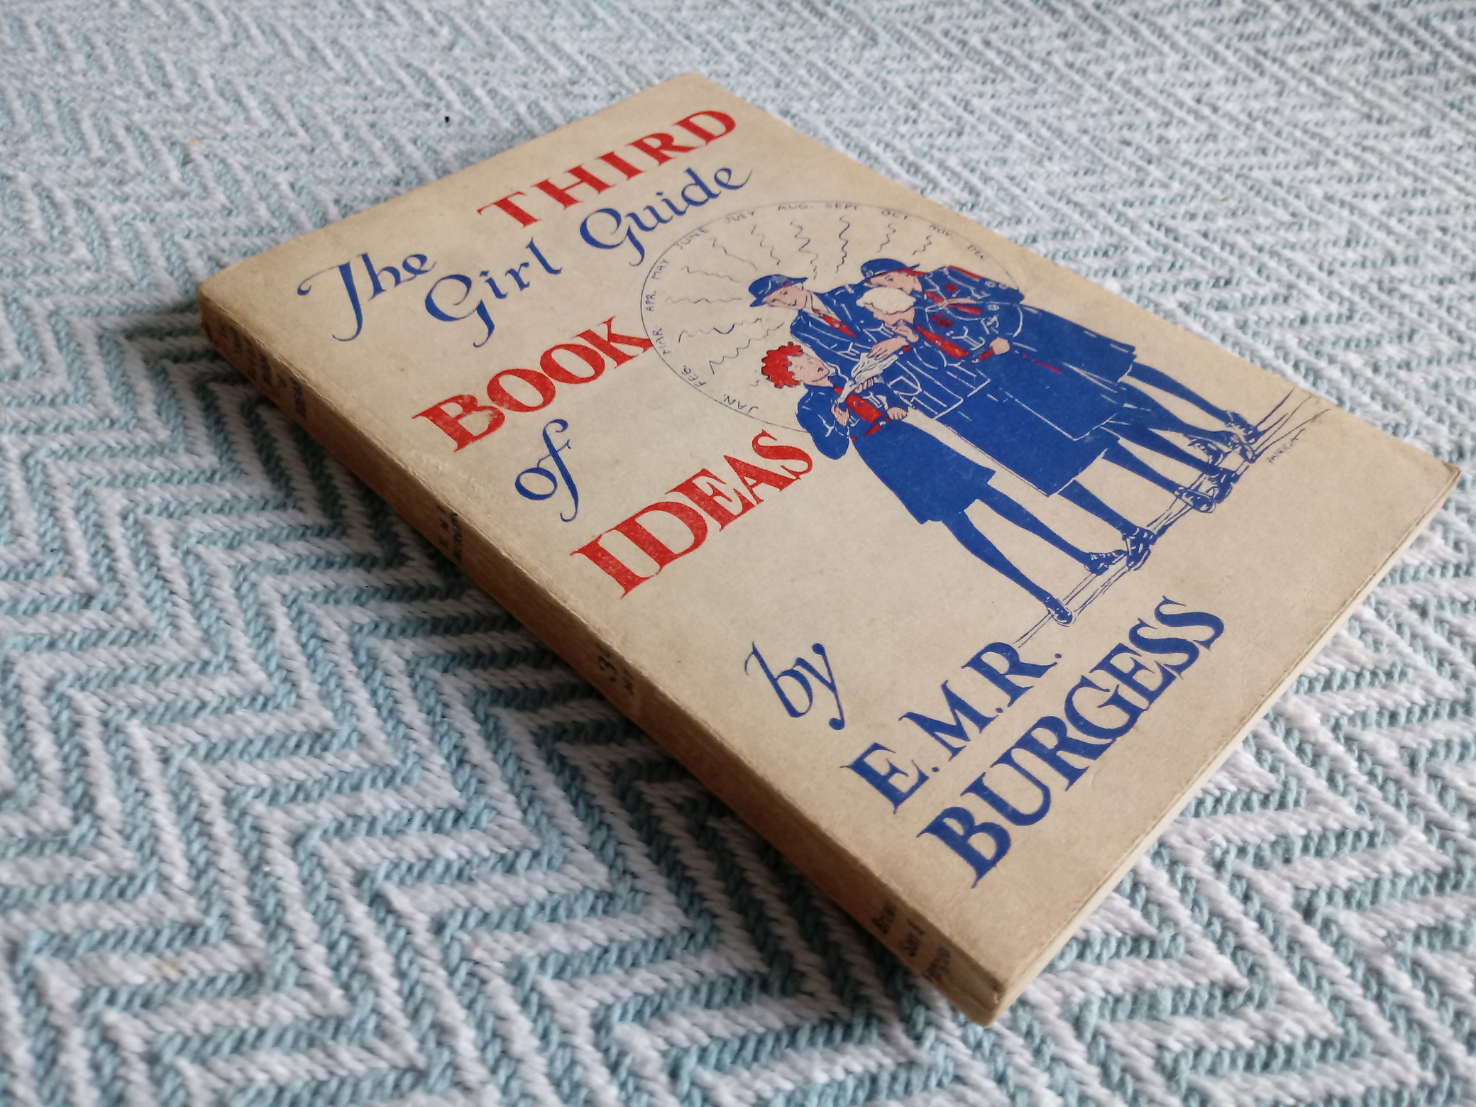 3 x Girl Guide Book of Ideas by E. M. R. Burgess softback books Published1939 and 1943 Brown, - Image 9 of 11